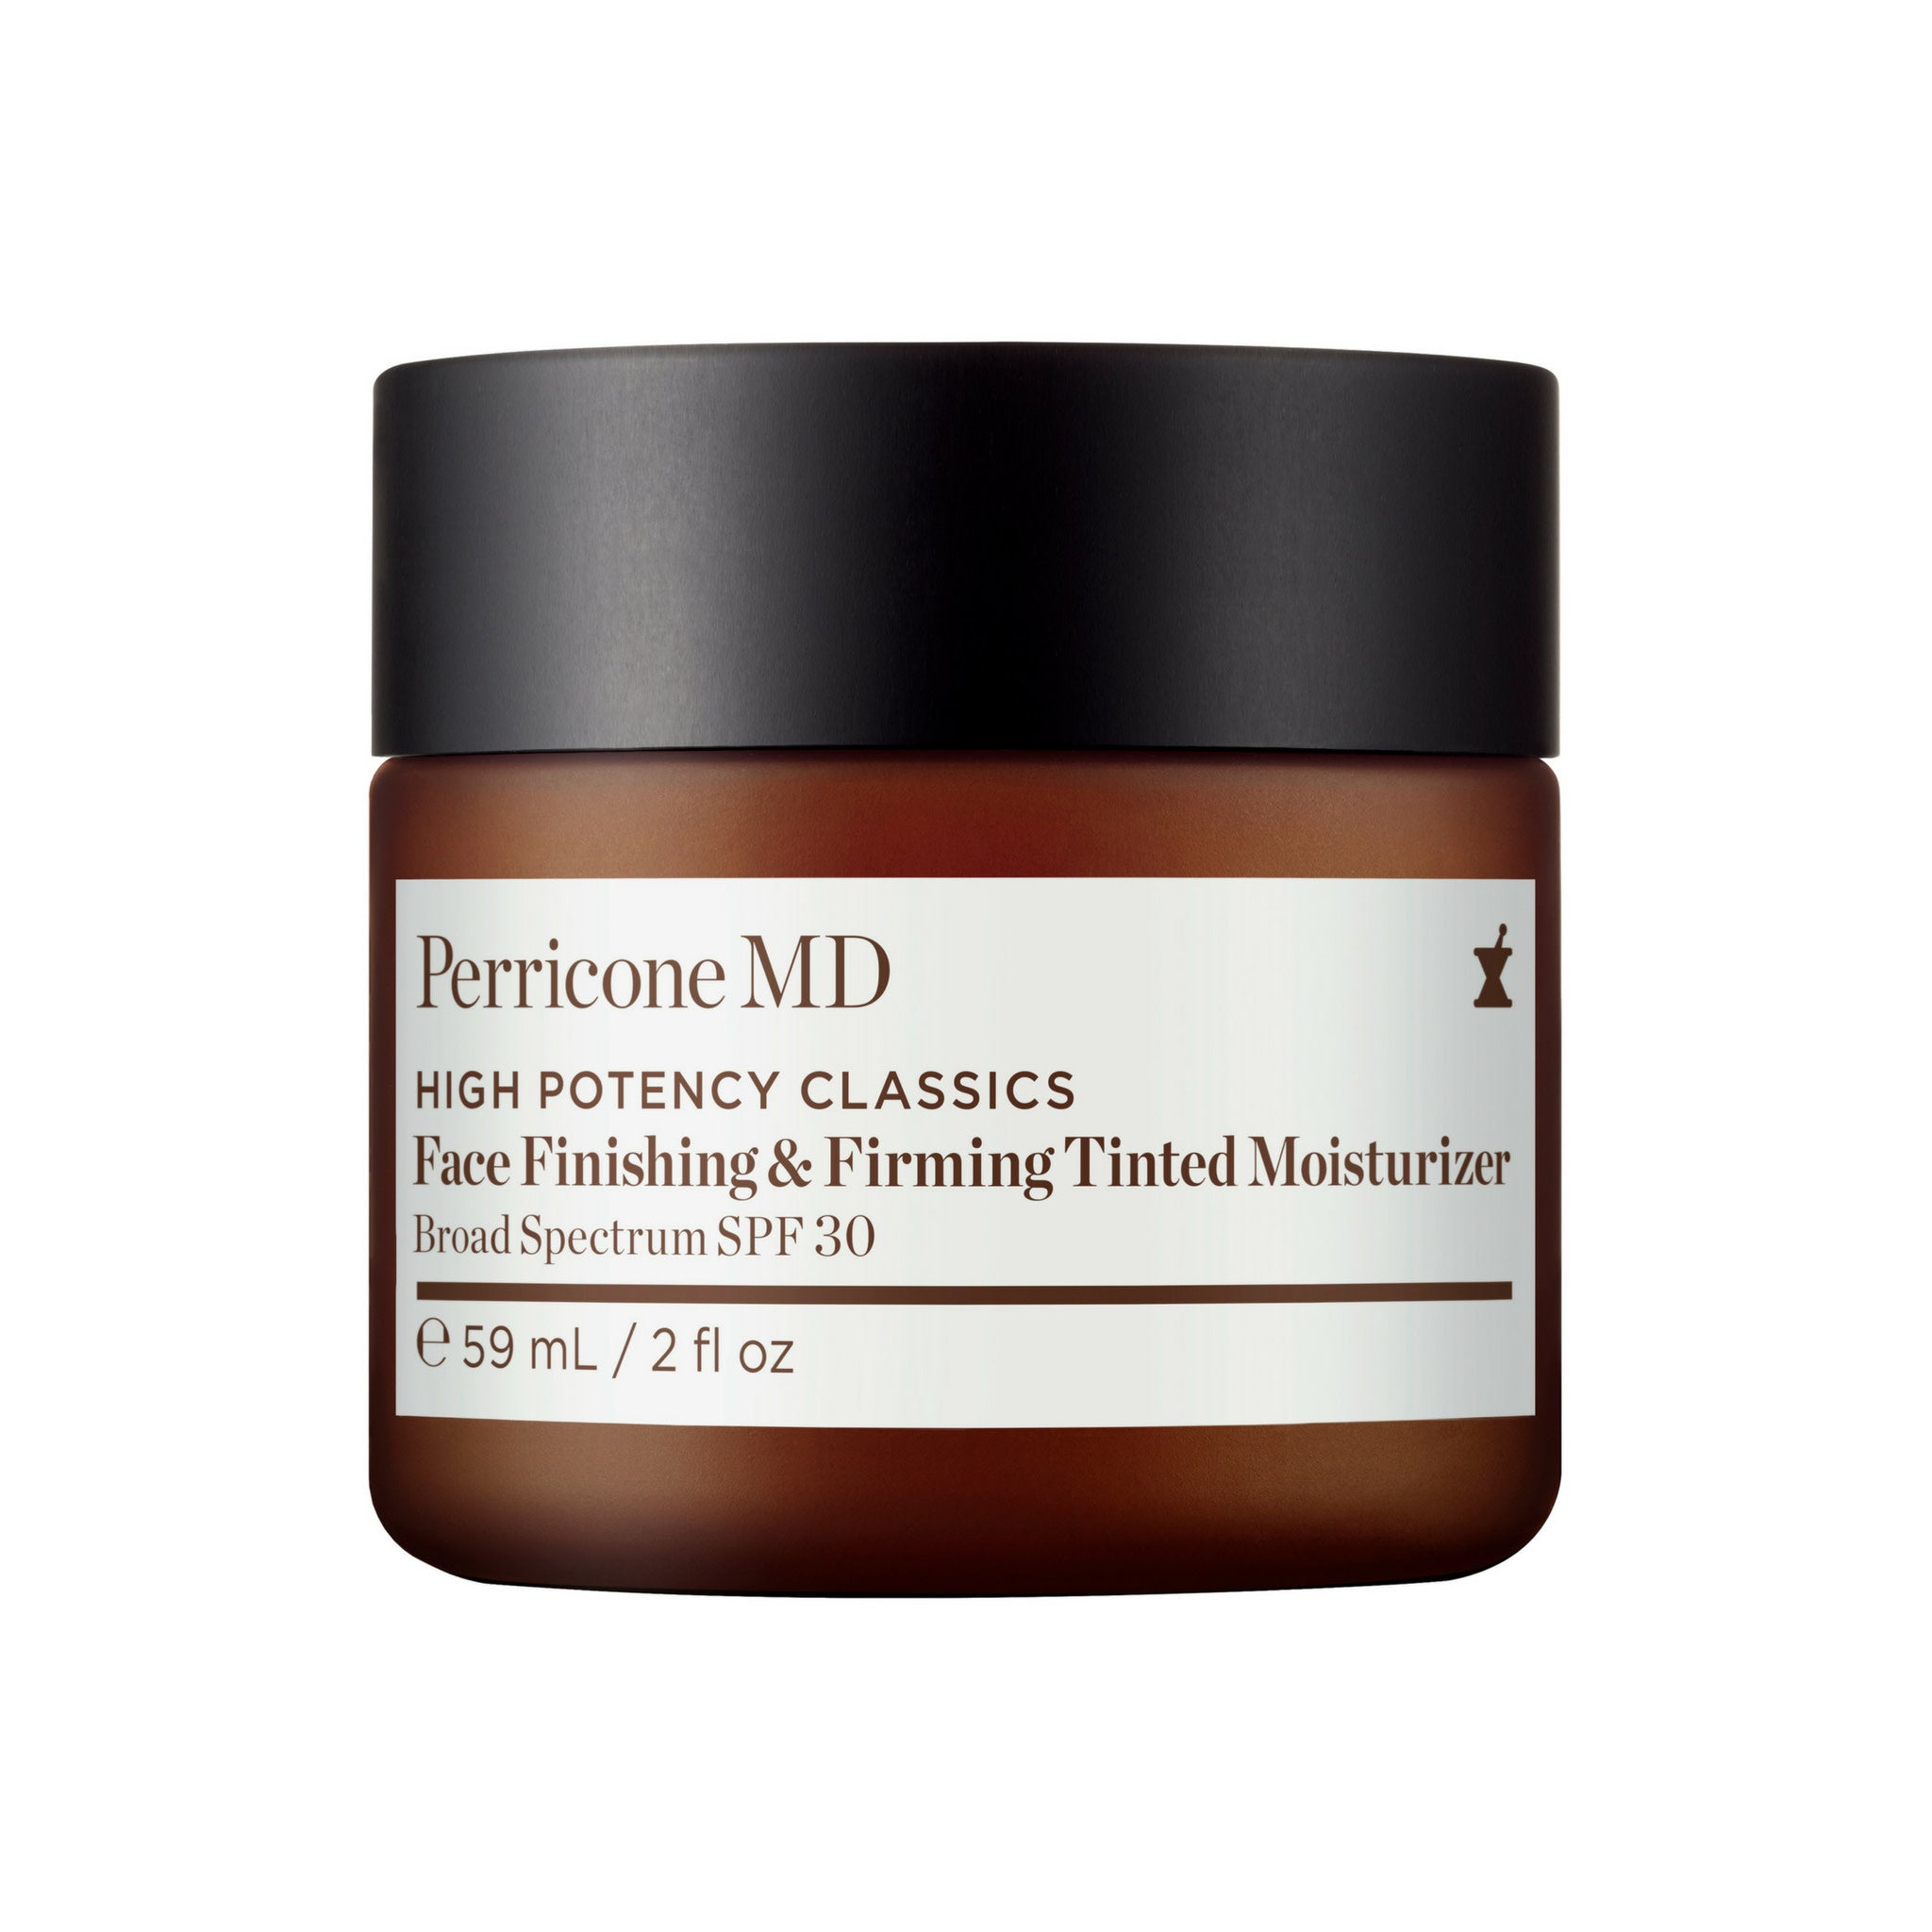 High Potency Face Finishing & Firming Tinted Moisturizer SPF 30